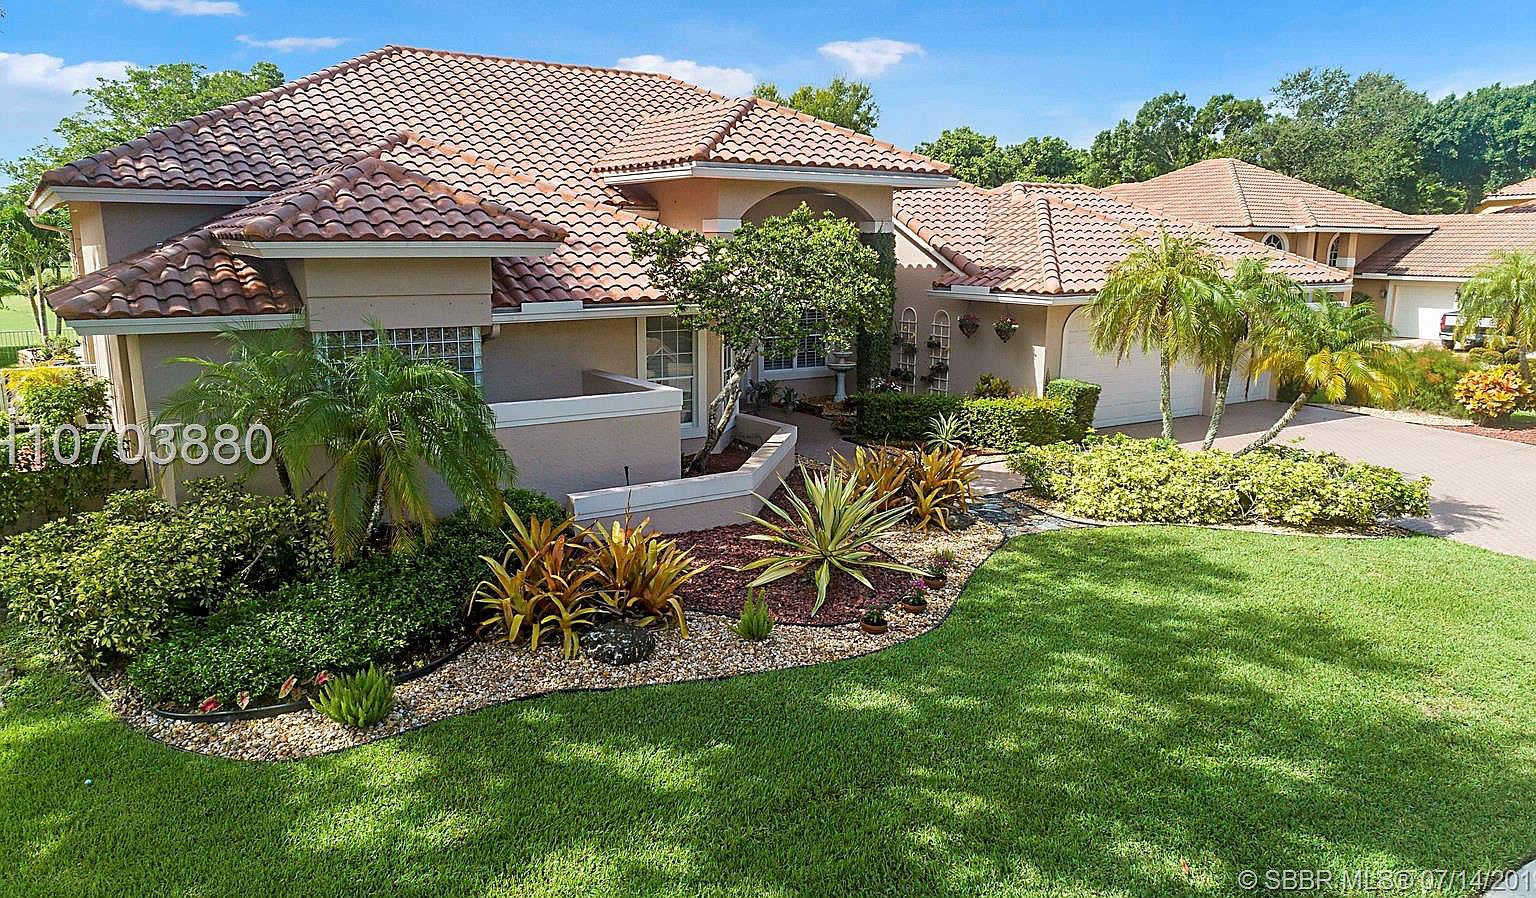 featured image of property, 12100 Eagle Trace Blvd N. Coral Springs